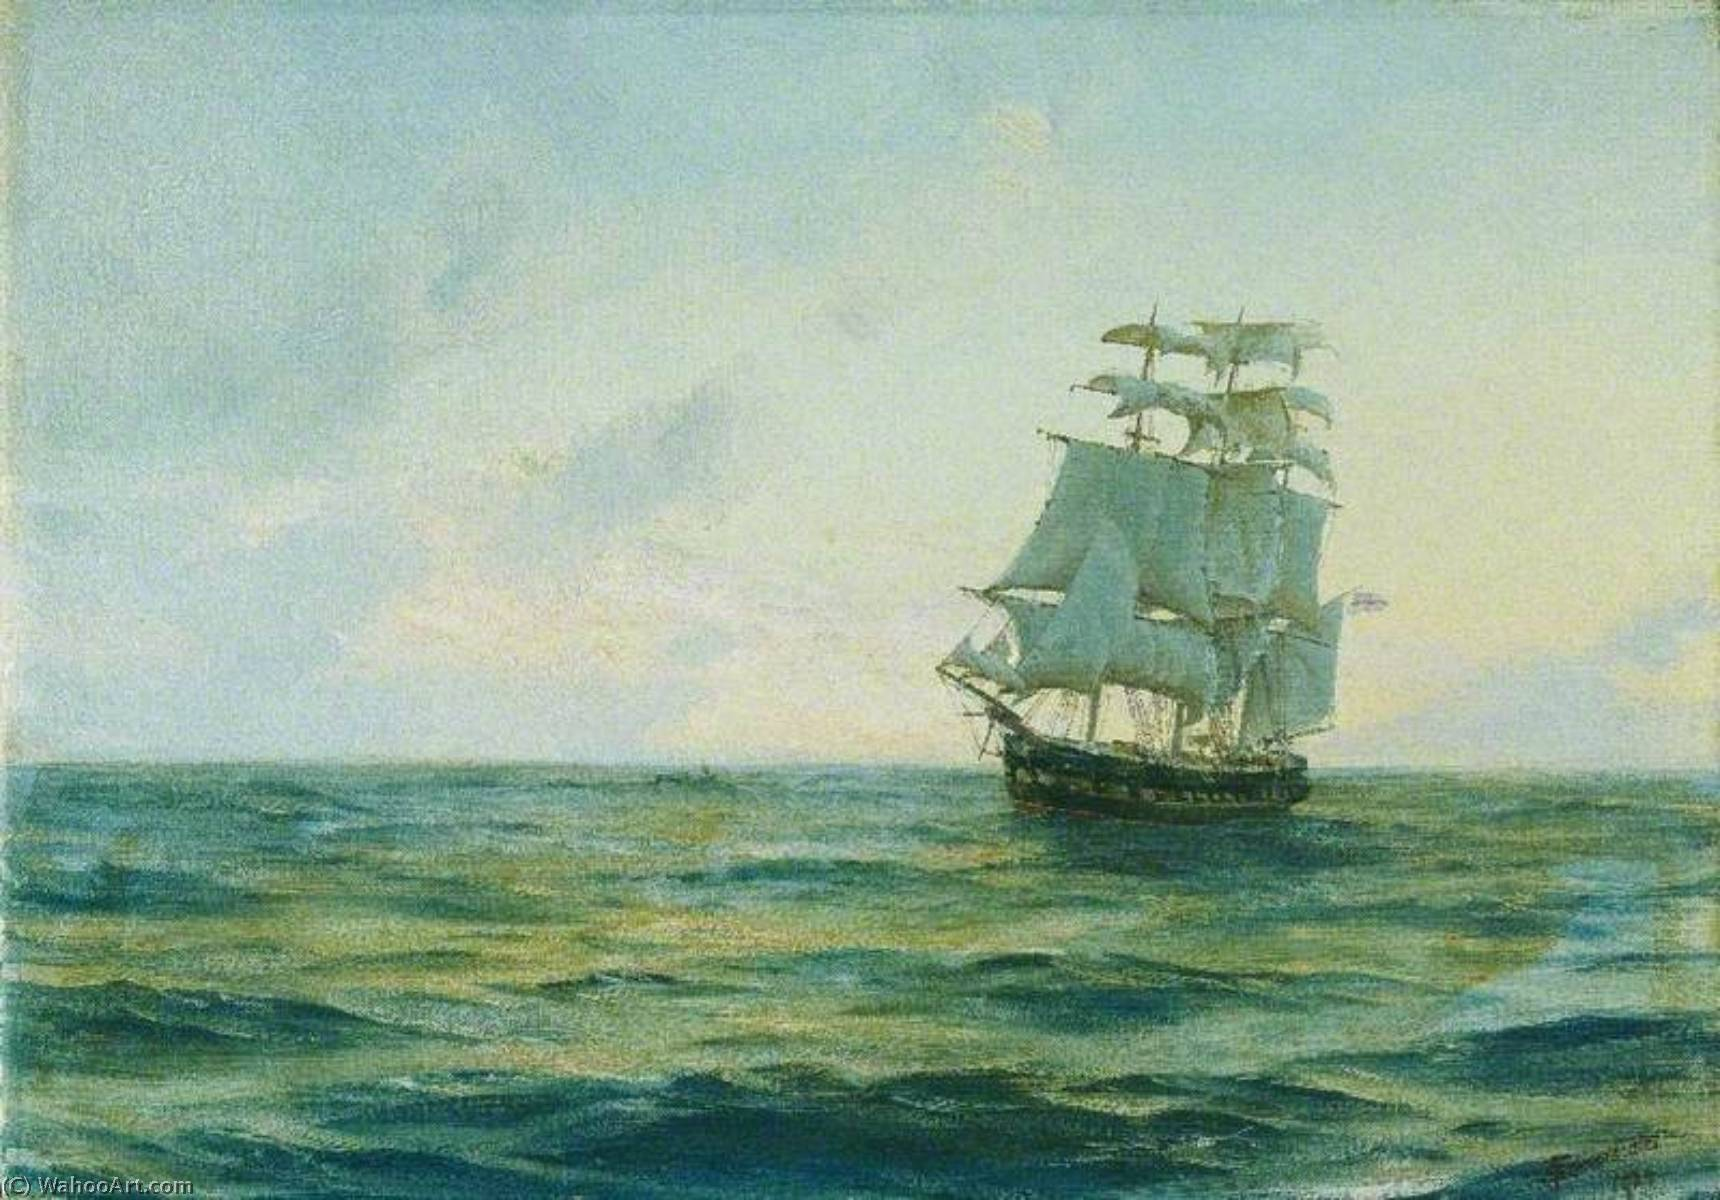 HMS 'Clio', холст, масло по Thomas Jacques Somerscales (1842-1927)